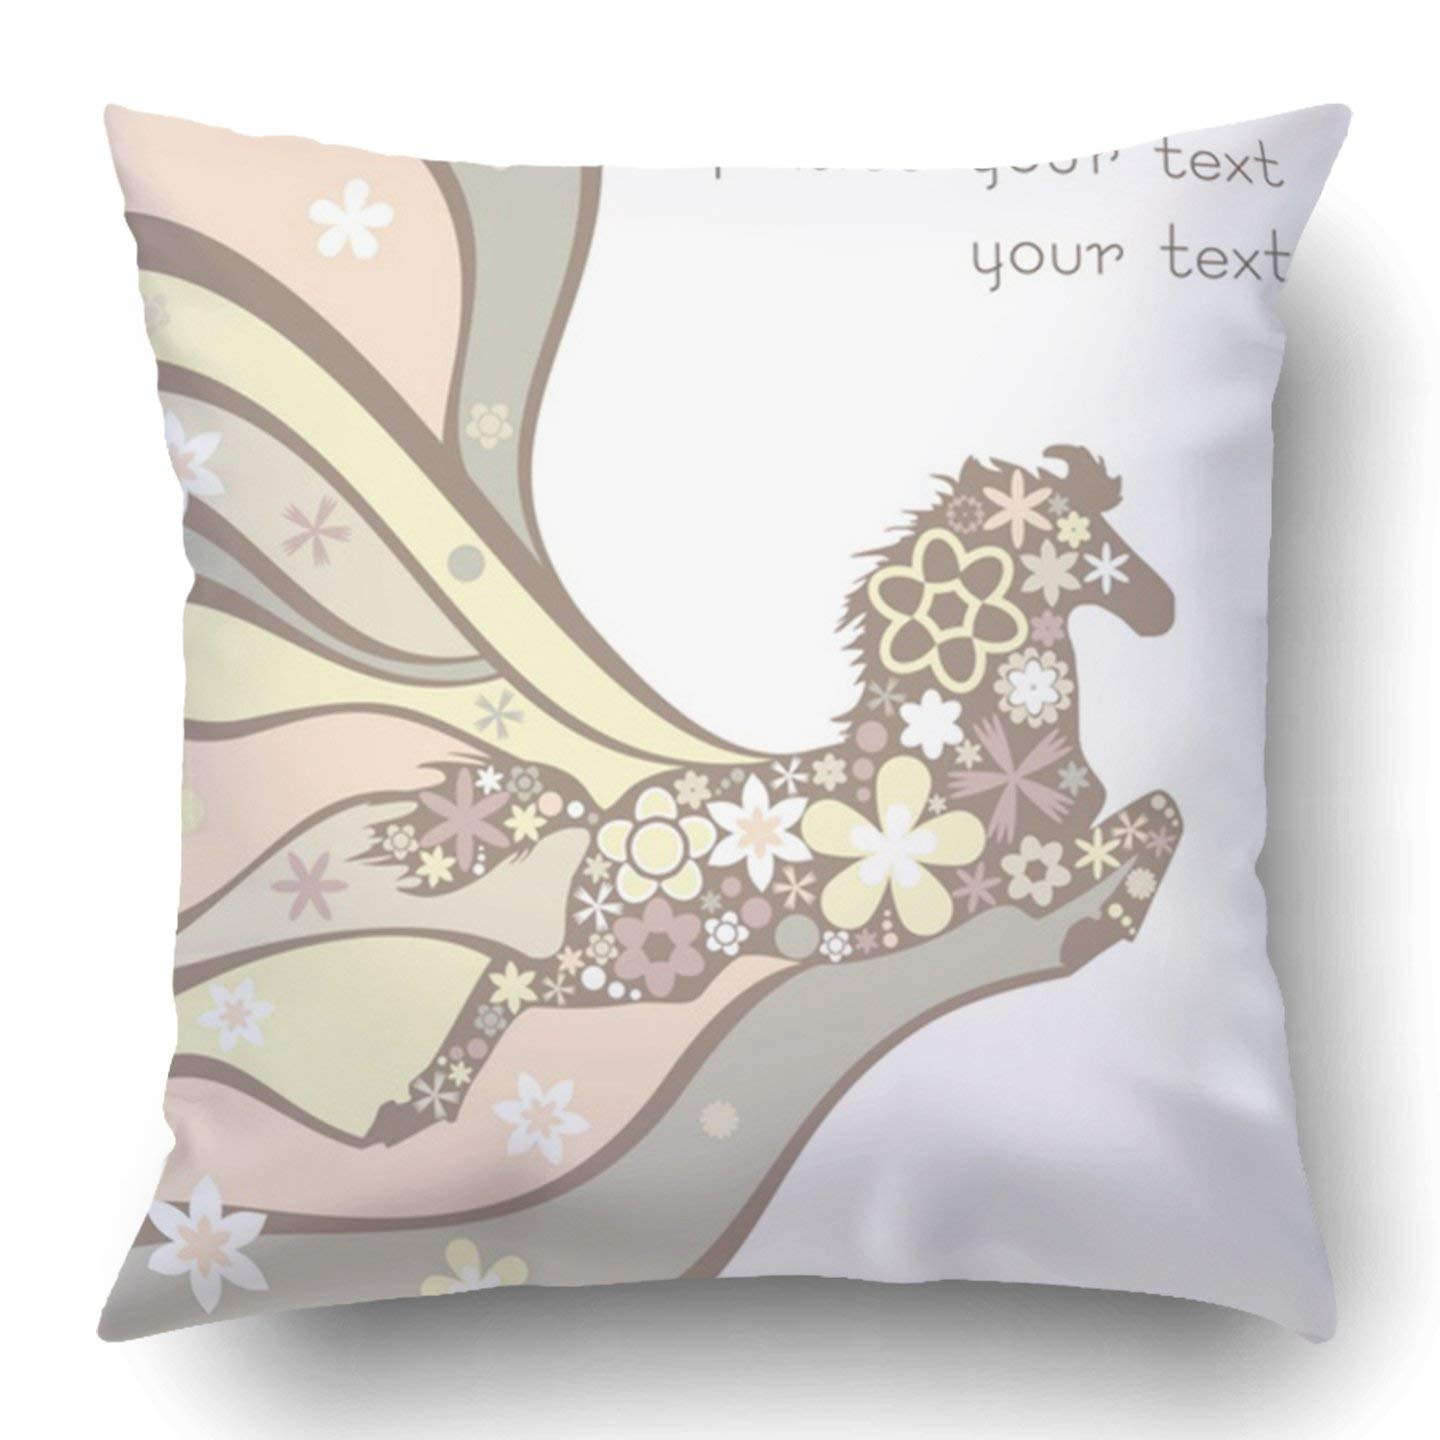 WOPOP Colorful Flower with Floral Horse Pink Creative Retro Year Color Curve Gentle Graphic Pillowcase 18x18 inch